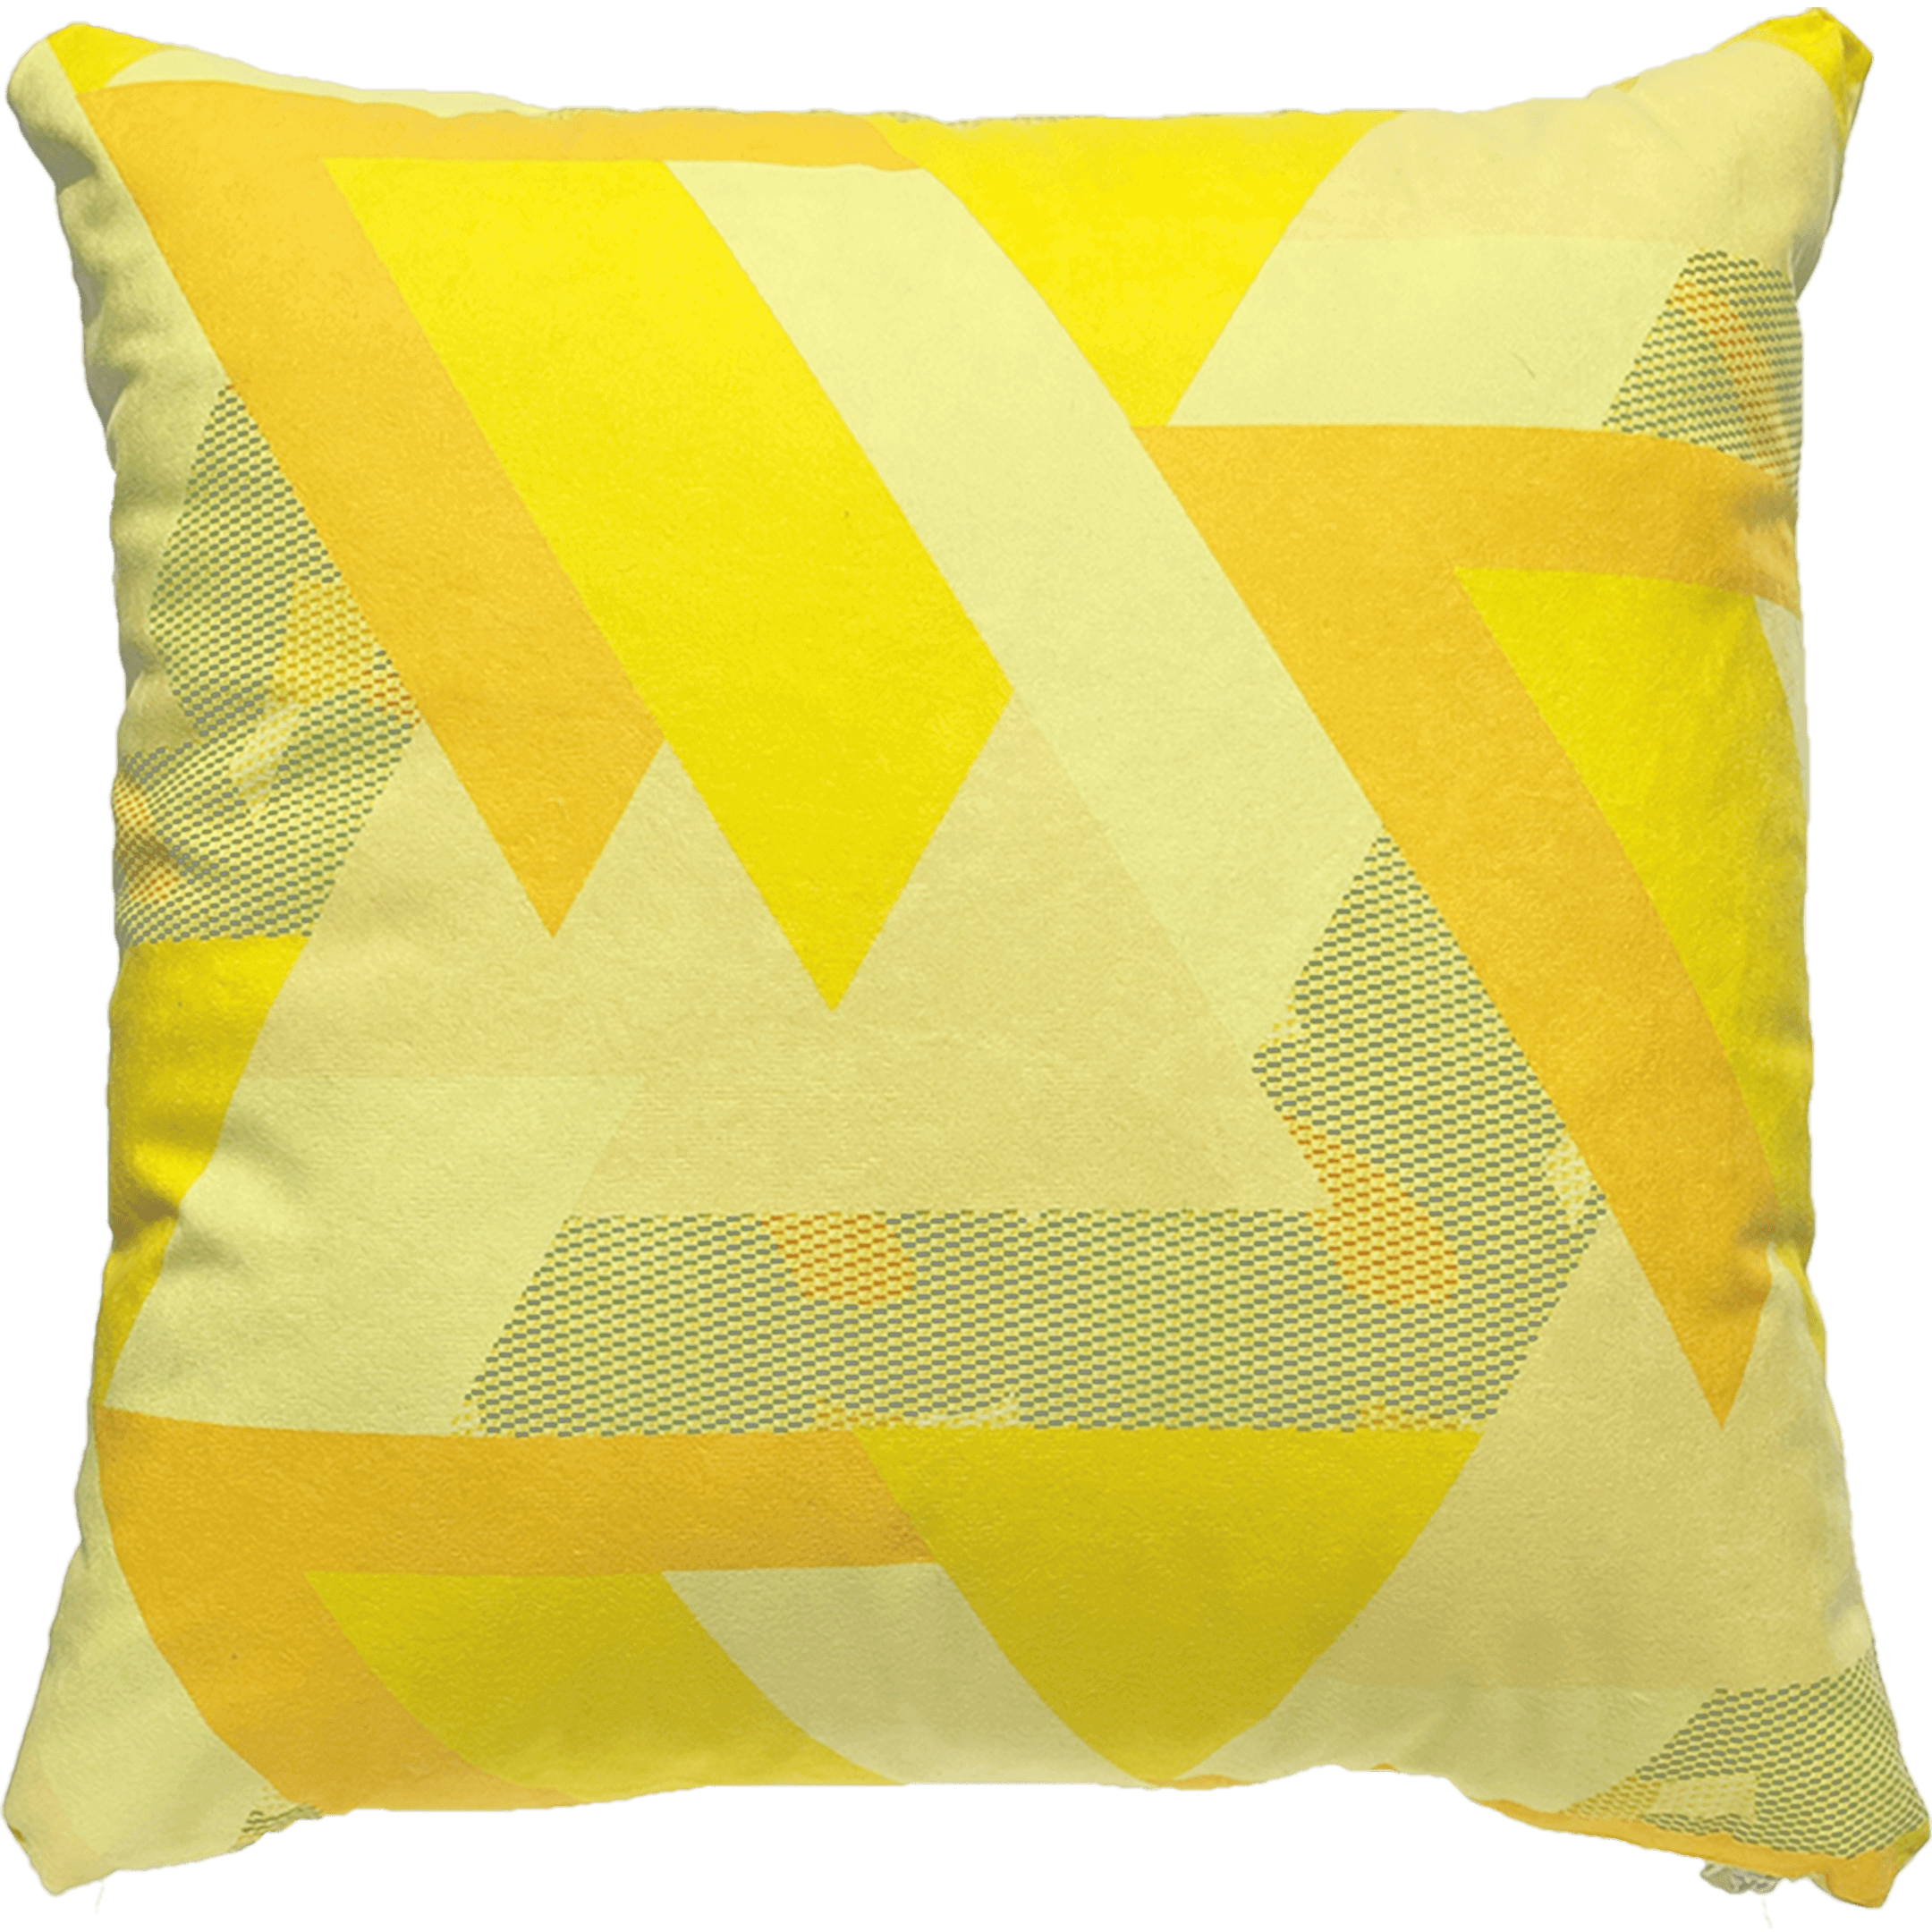 Patterned faux suede yellow throw pillow. Yellow, orange and peach triangles with a blue and orange pattern.